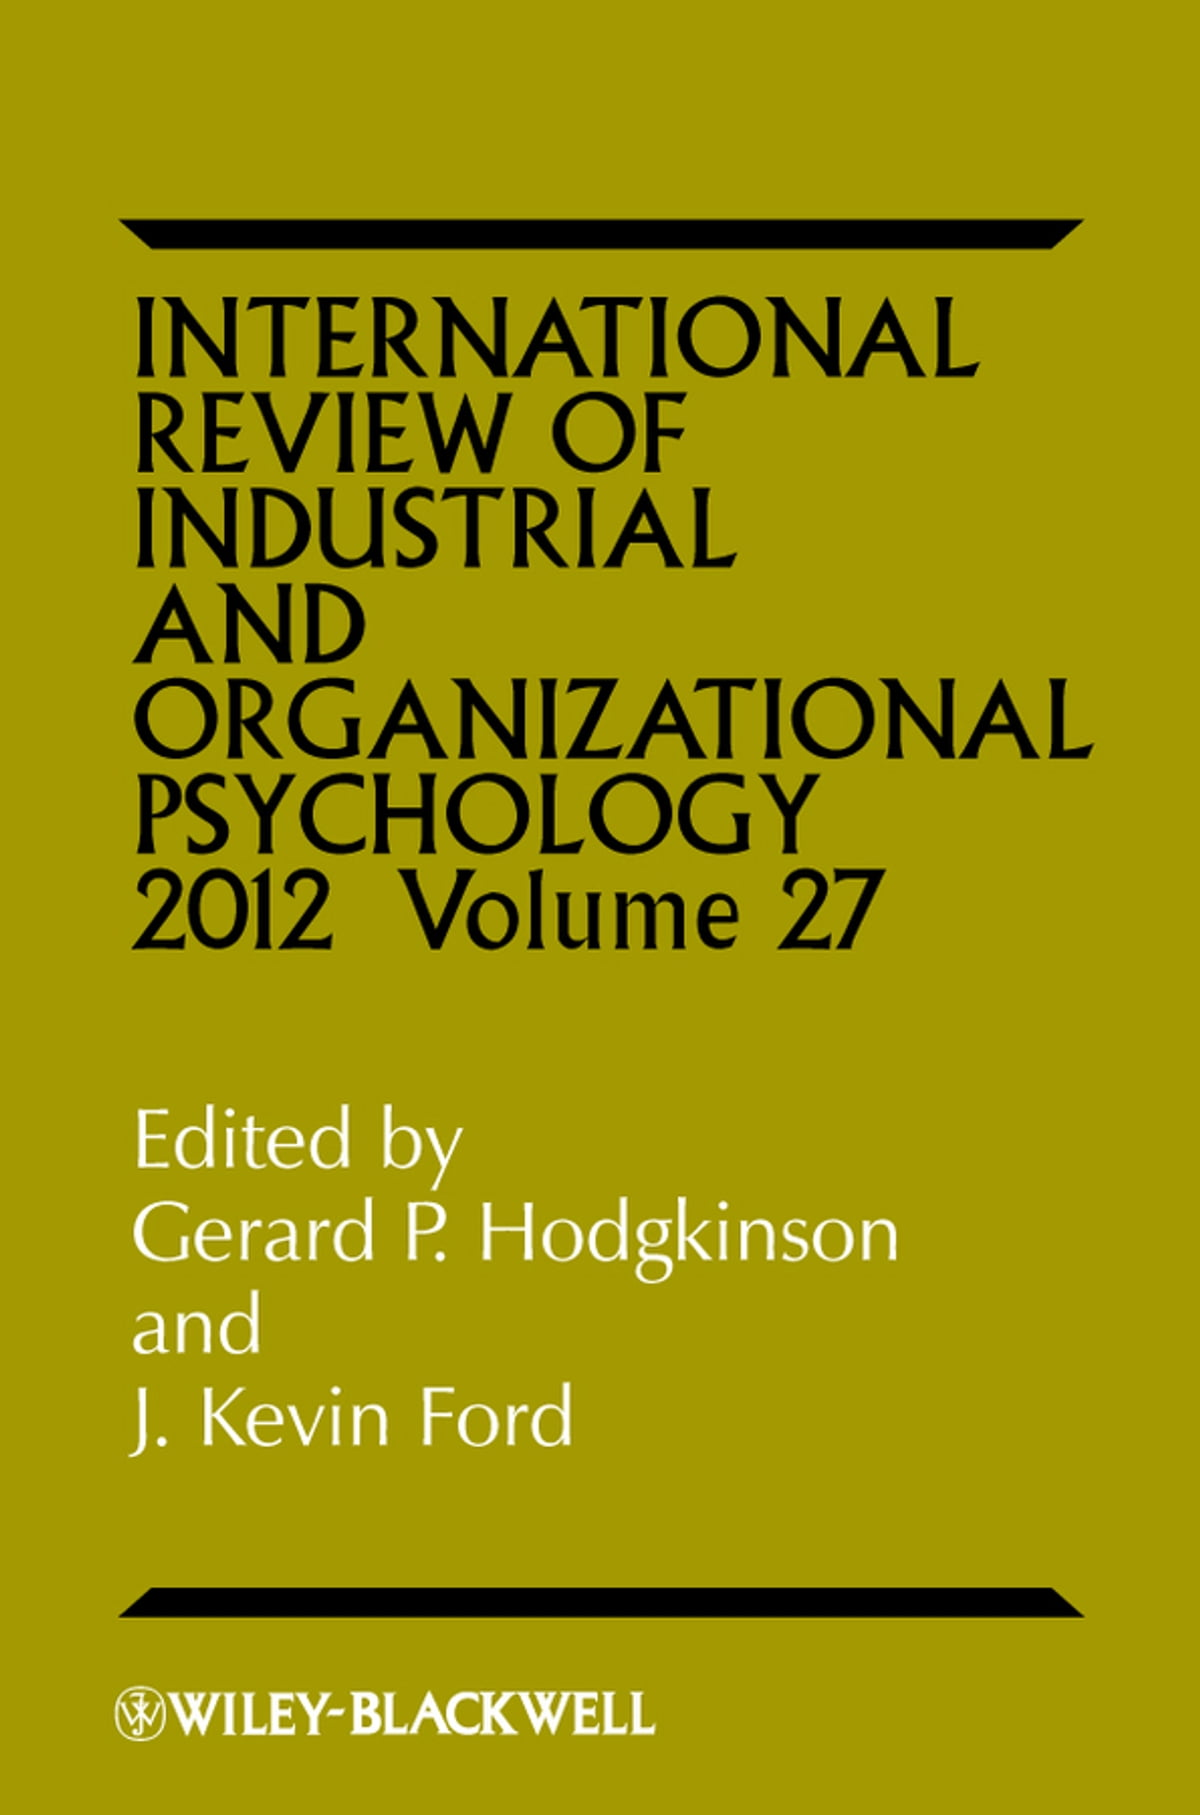 fundamental concepts of industrial and organizational Organizations, one that addresses primary foci of theory and research, highlights applied implications, and identifies key issues in need of research attention and resolution given the volume of existing reviews.